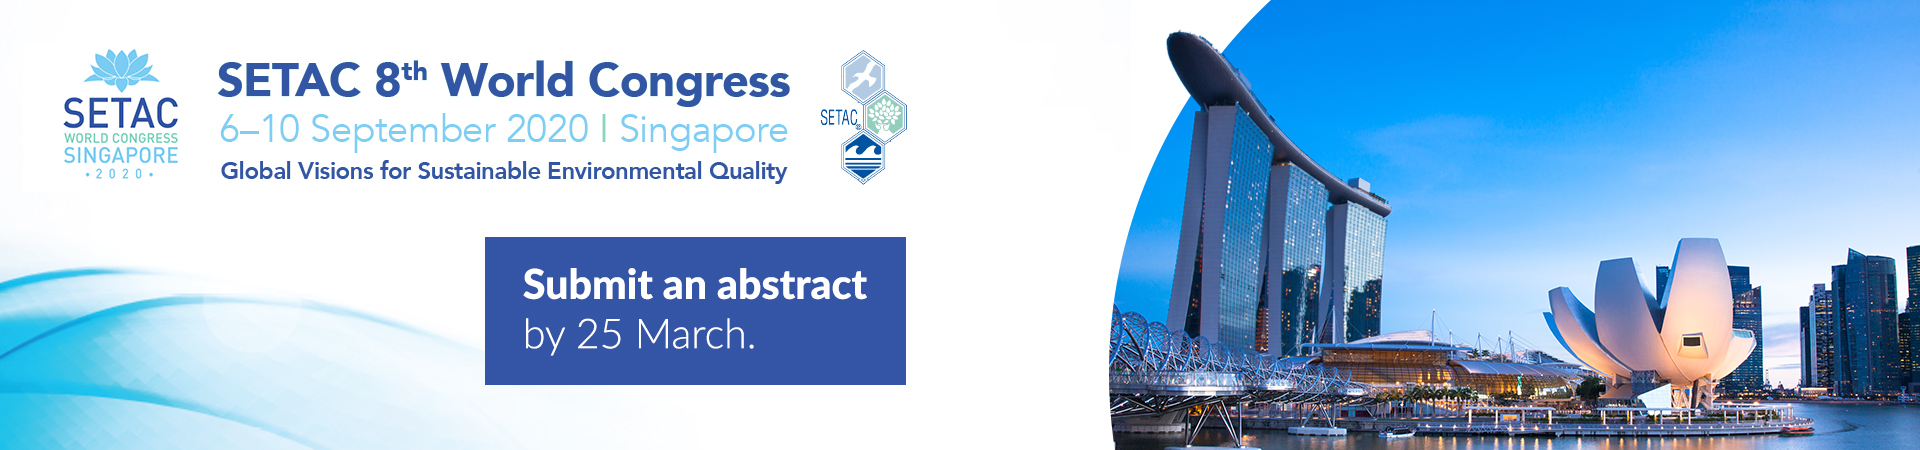 Submit an abstract for the SETAC 8th World Congress